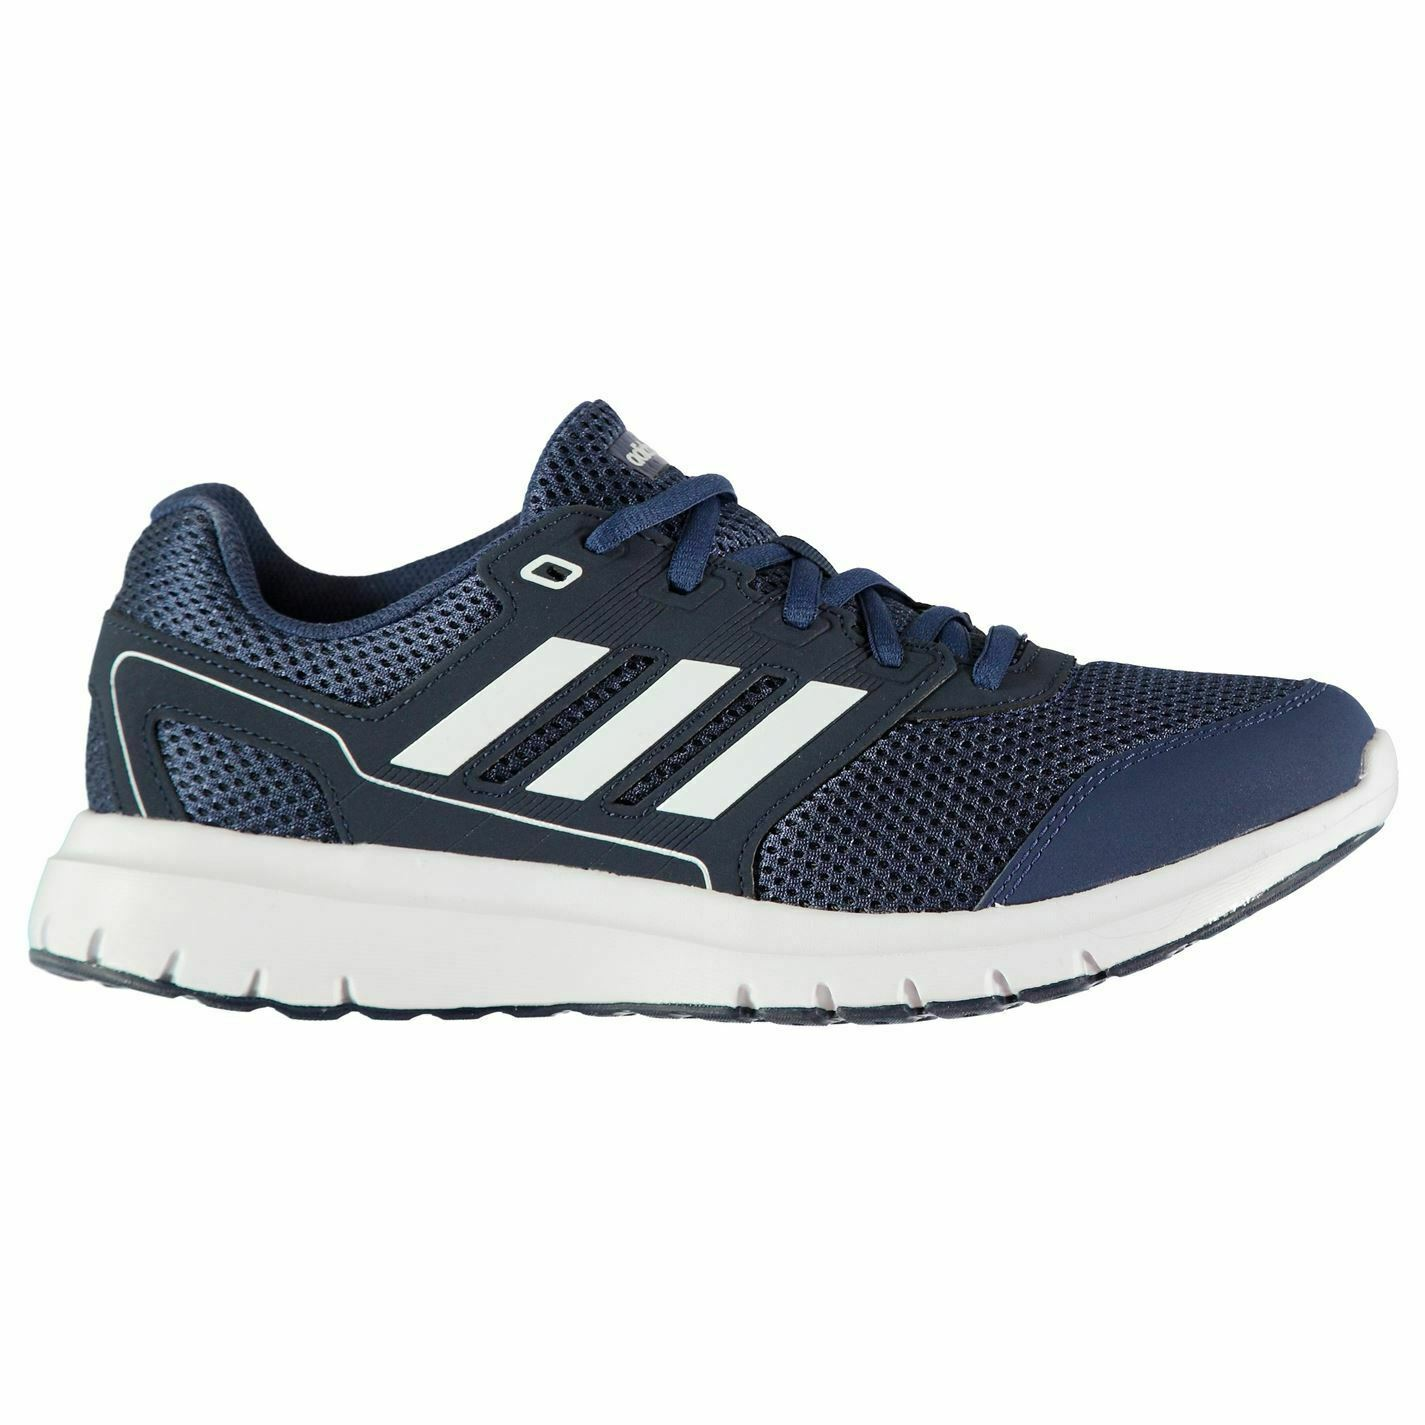 Adidas  Duramo Lite 2 Fitness Training shoes Mens Navy White Trainers Sneakers  wholesale store